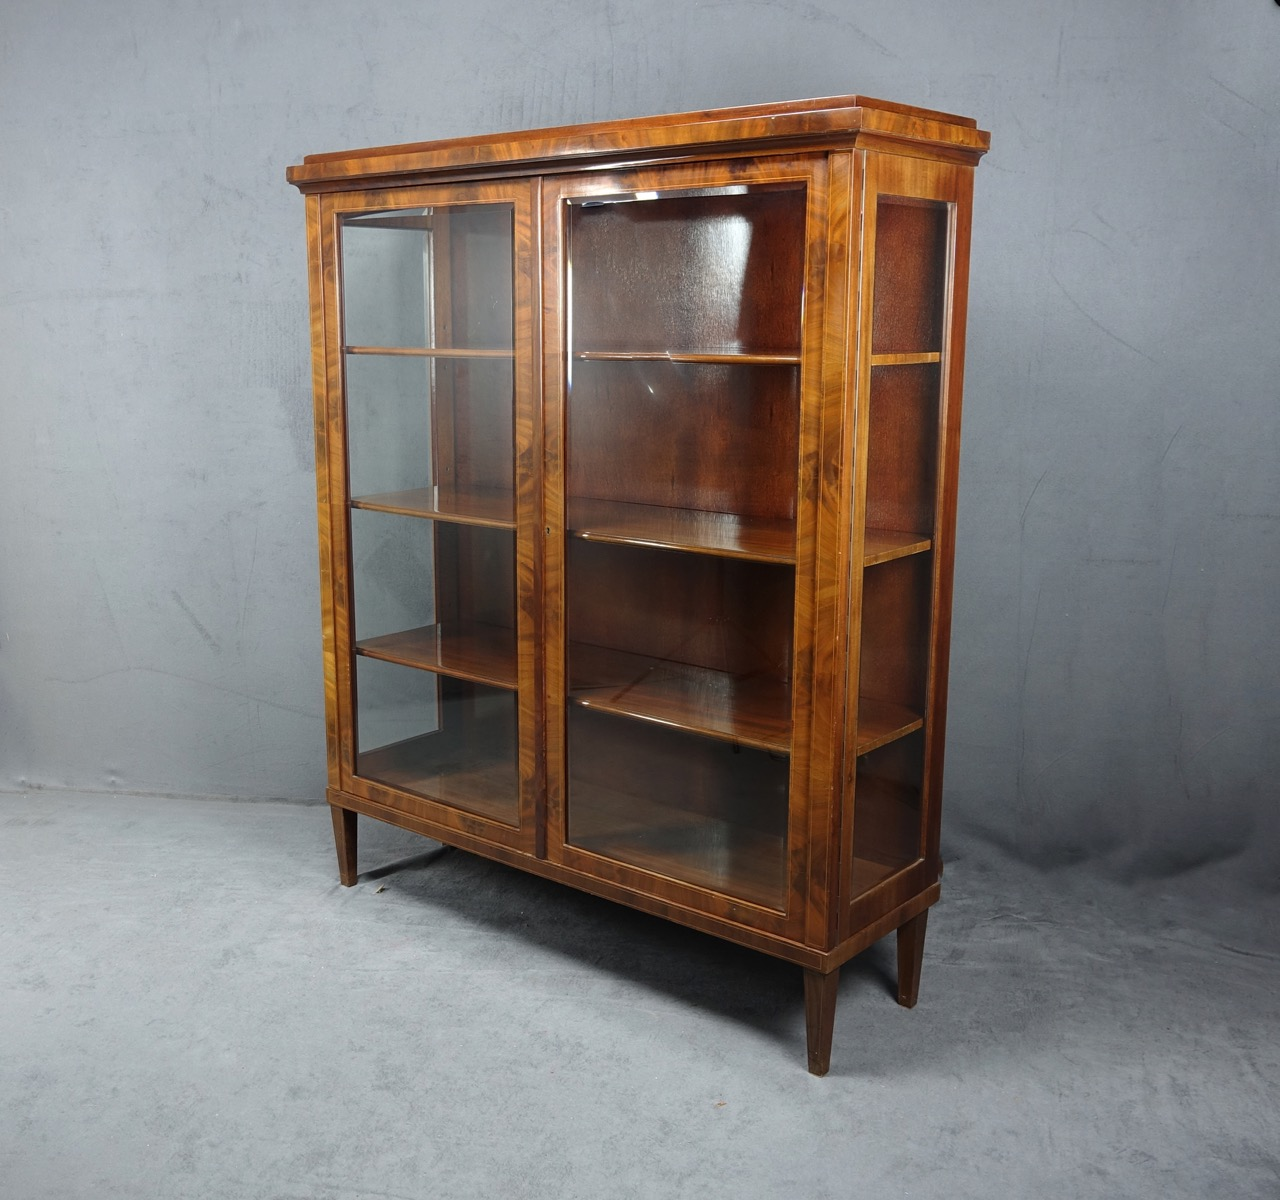 art deco vitrine mahagoni fadeneinlagen rundumverglast fascettschliff um 1928 ebay. Black Bedroom Furniture Sets. Home Design Ideas